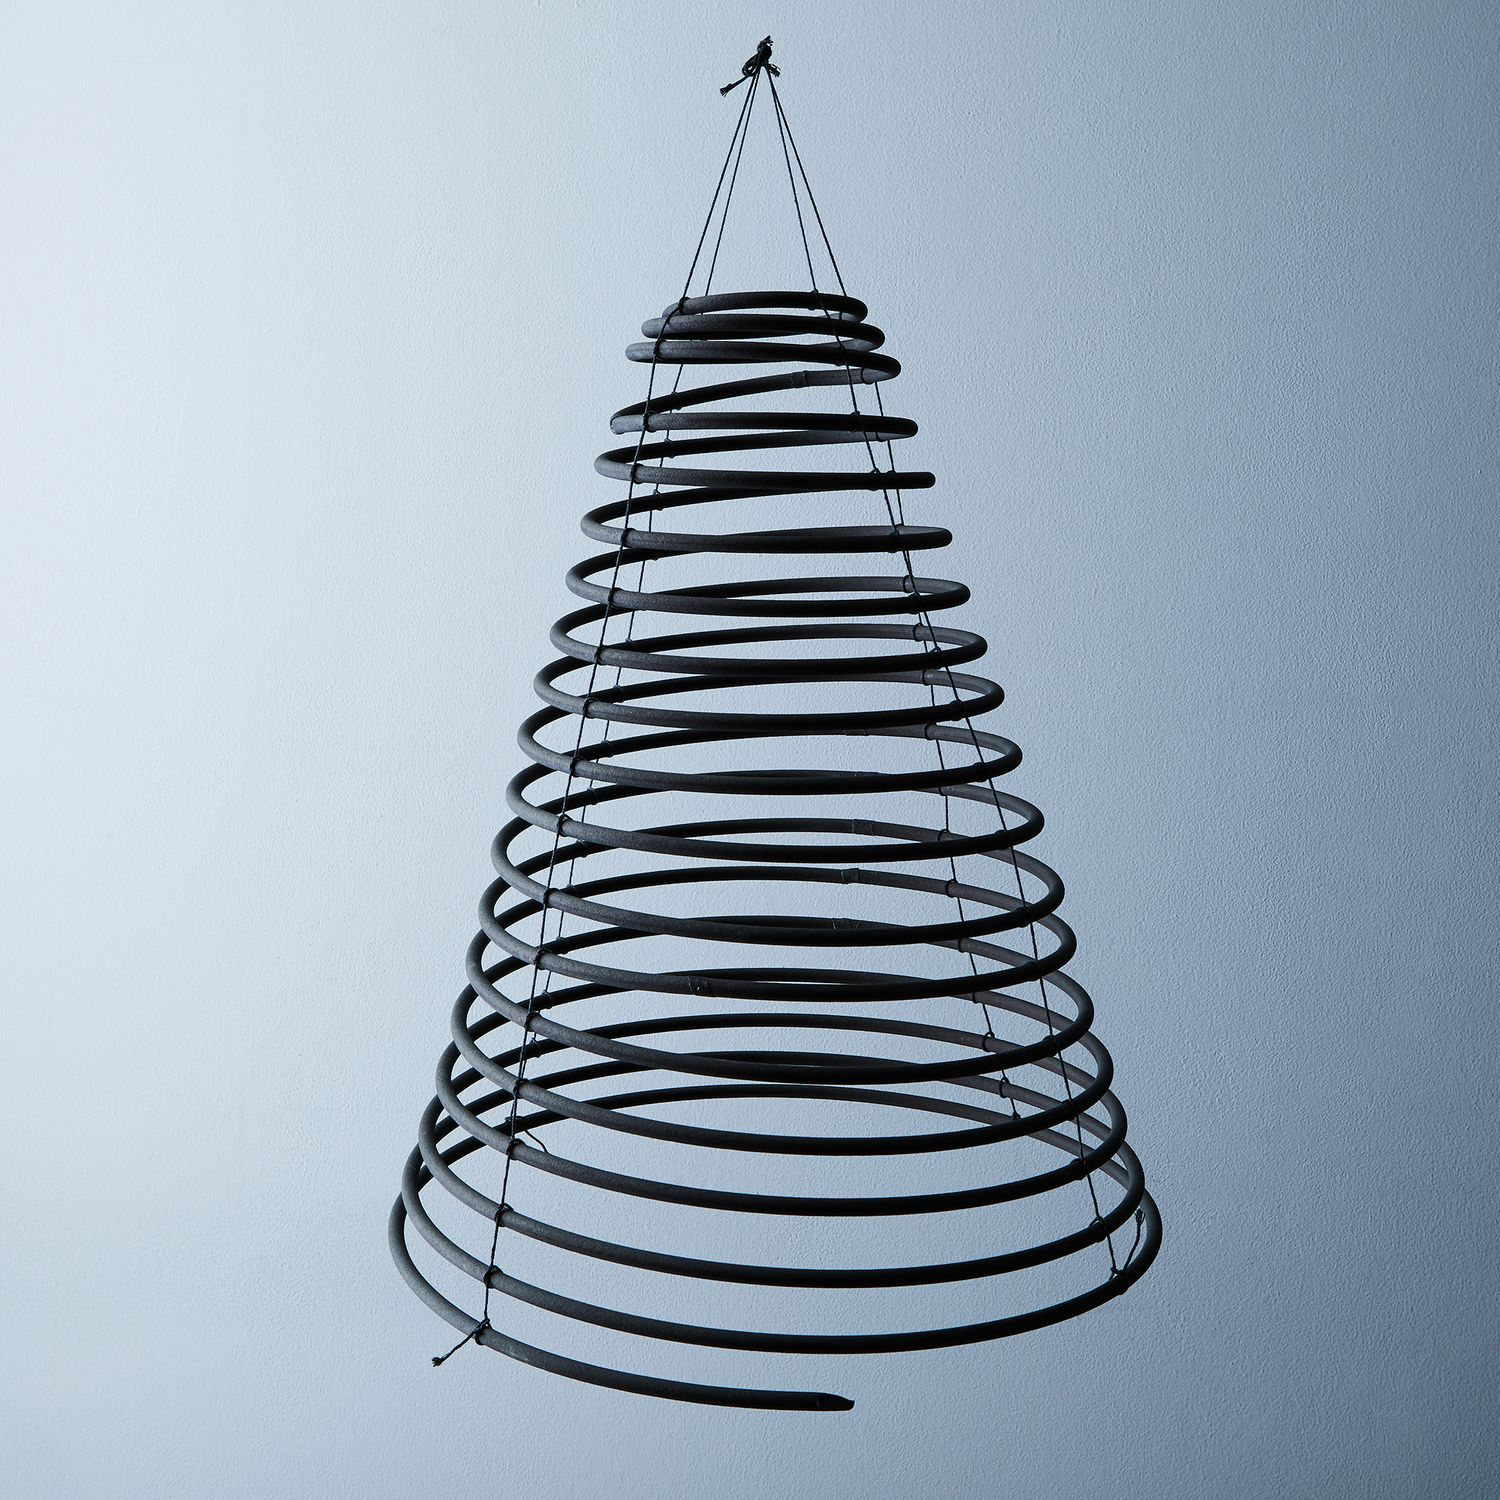 Citronella Hanging Coil Old Hanging Citronella Natural Insect Repellant